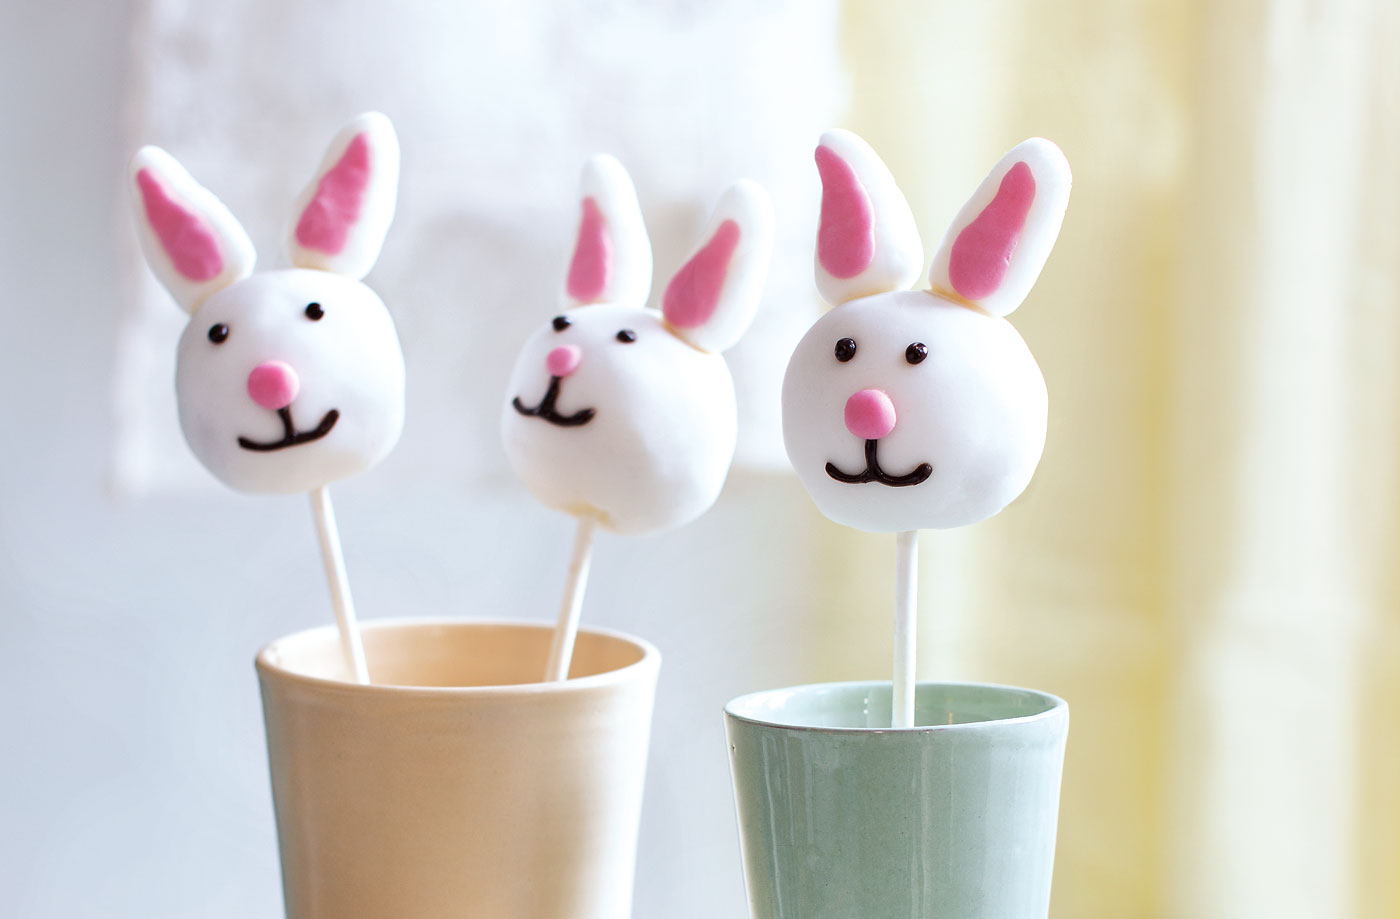 Cute Marshmallow Wallpaper Hd 16 Rabbit Cakes For Some Bunny Special This Easter